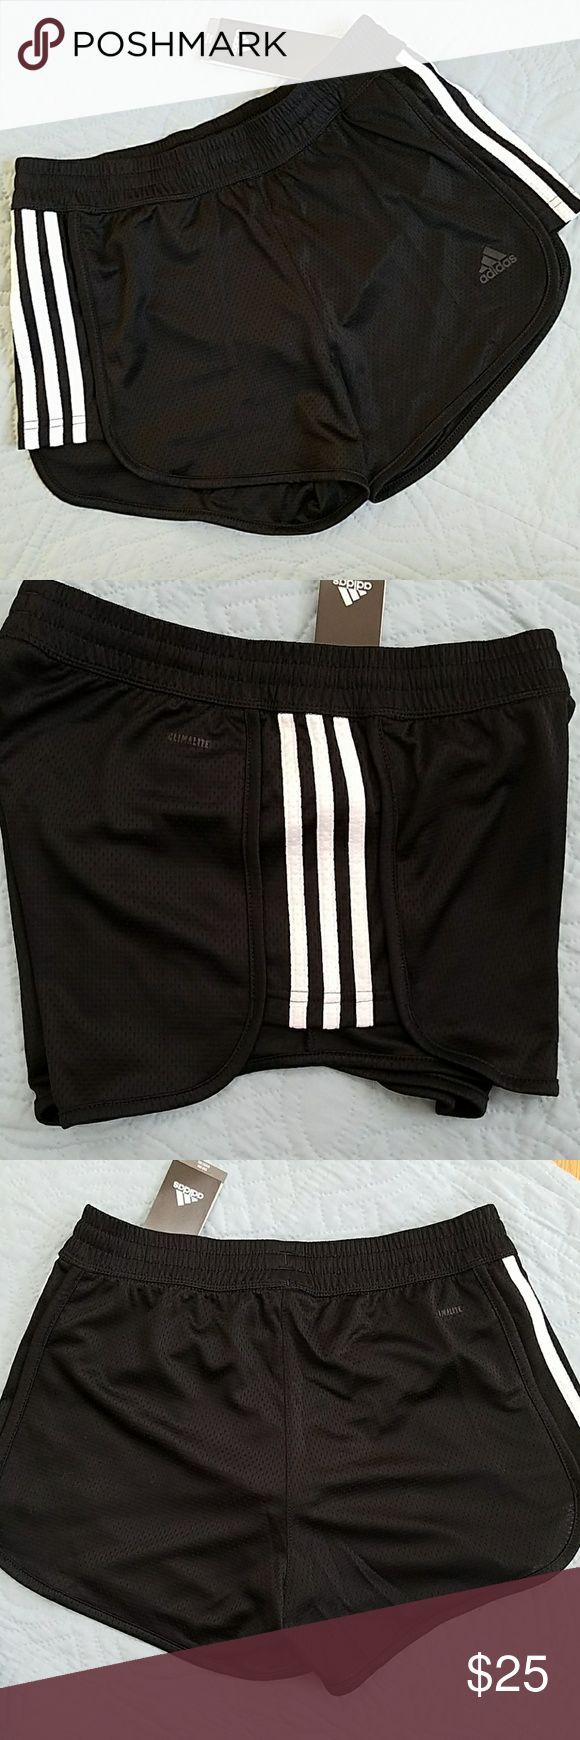 Adidas shorts black NWT Designed to move with you, these Women's Climalite training shorts are made of sweat- wicking lightweight fabric. The slim-fit shorts feature 3-Stripes on the side panels.  100% polyester/lining 92%polyester/8%spandex adidas Shorts Skorts